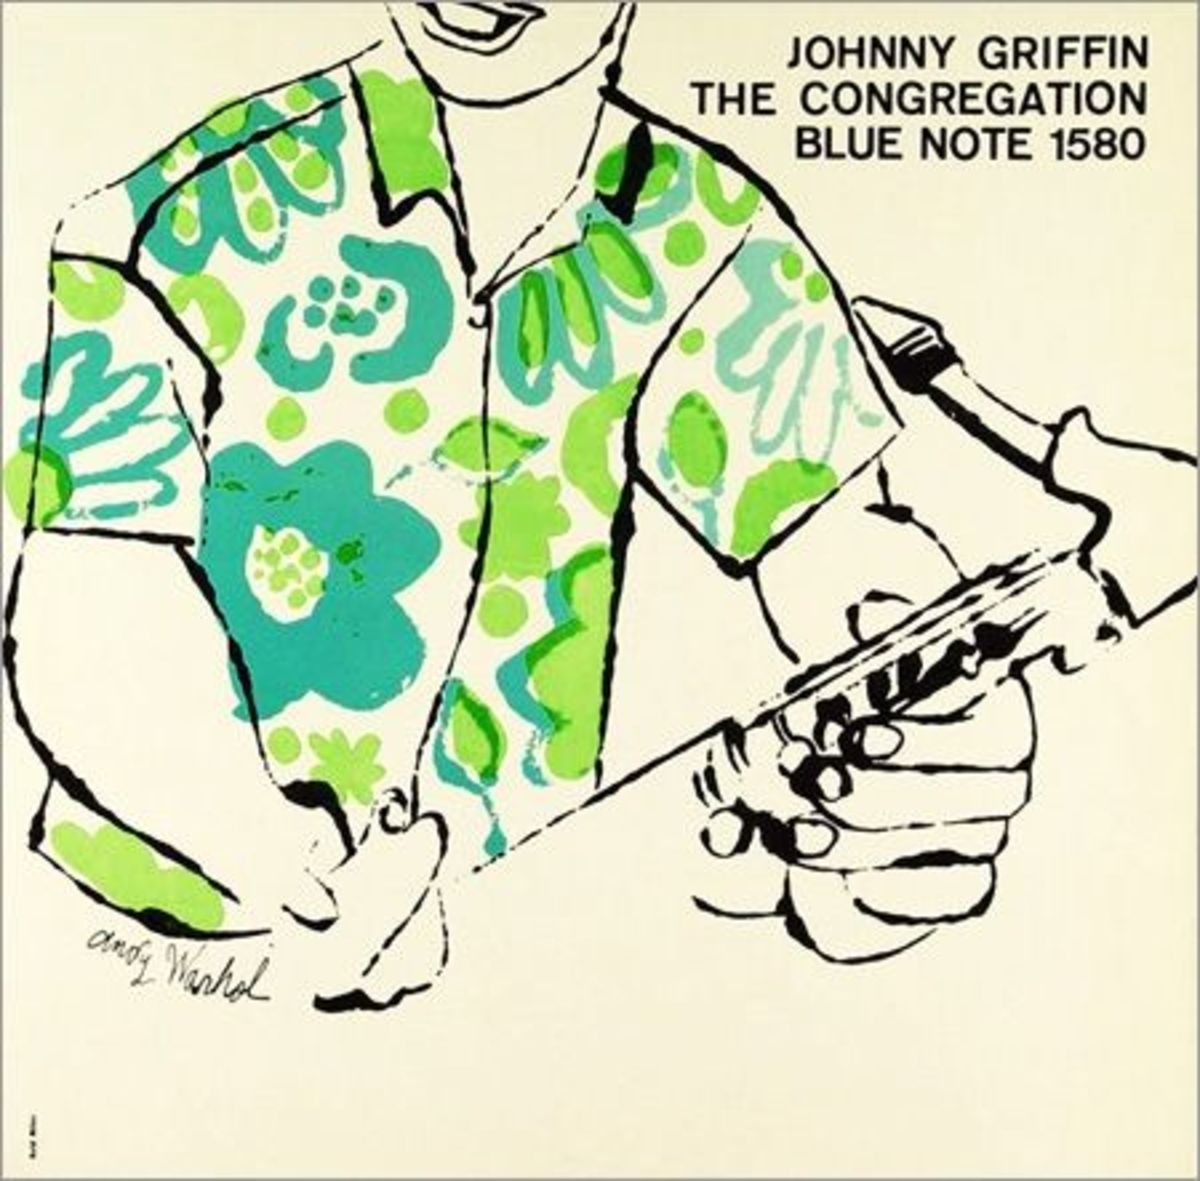 "Johnny Griffin ""The Congregation"" Blue Note Records BLP 1580 LP Vinyl Record with Album Cover Art by Andy Warhol"